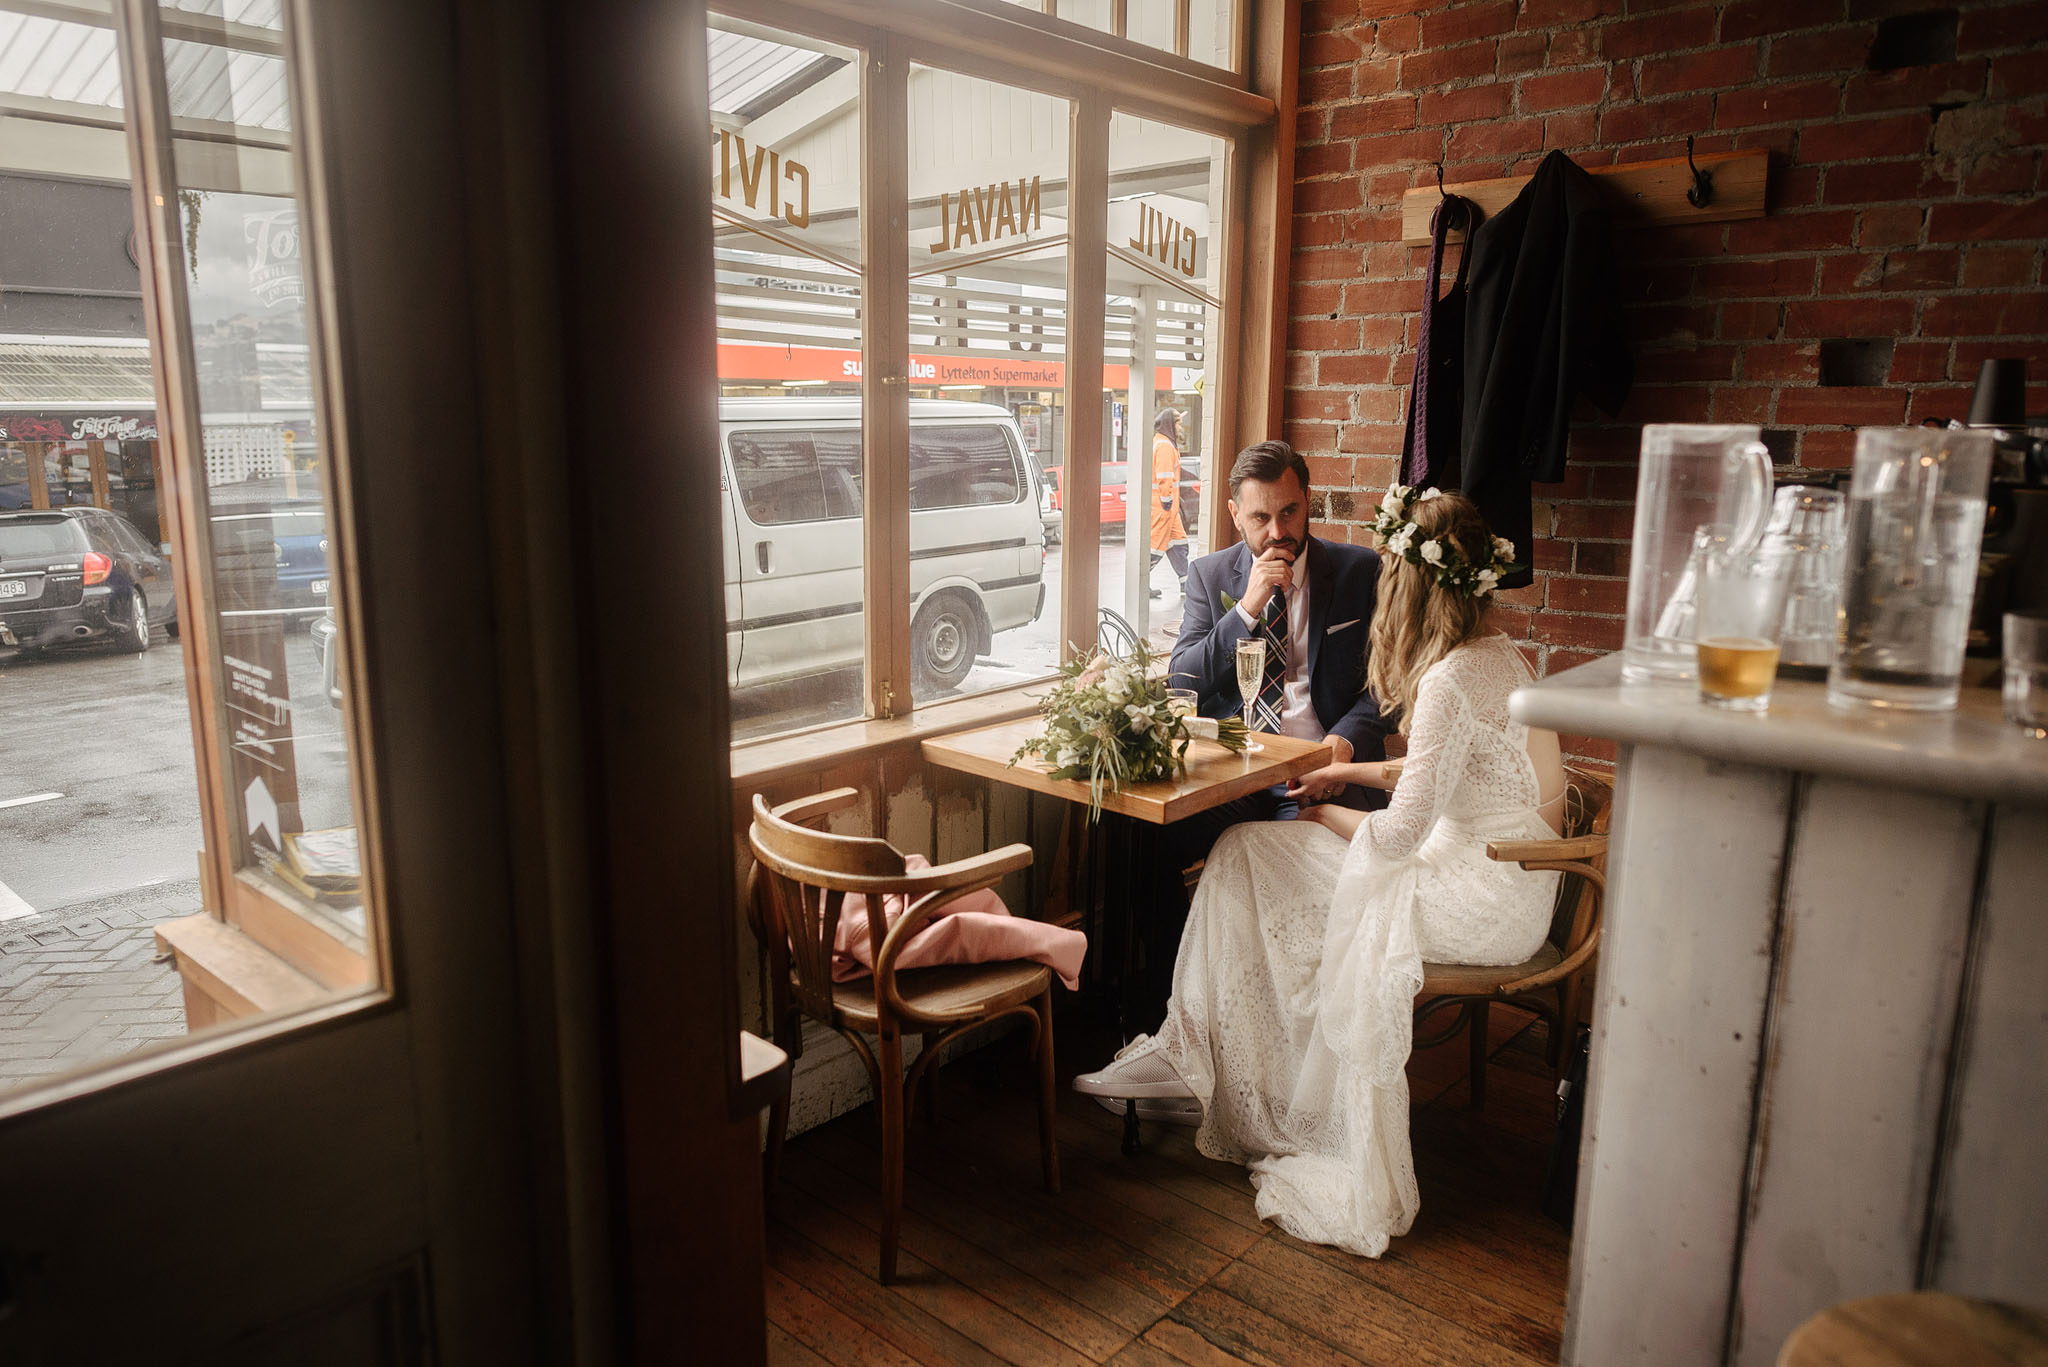 Bride and groom at Civil and Naval in Lyttelton